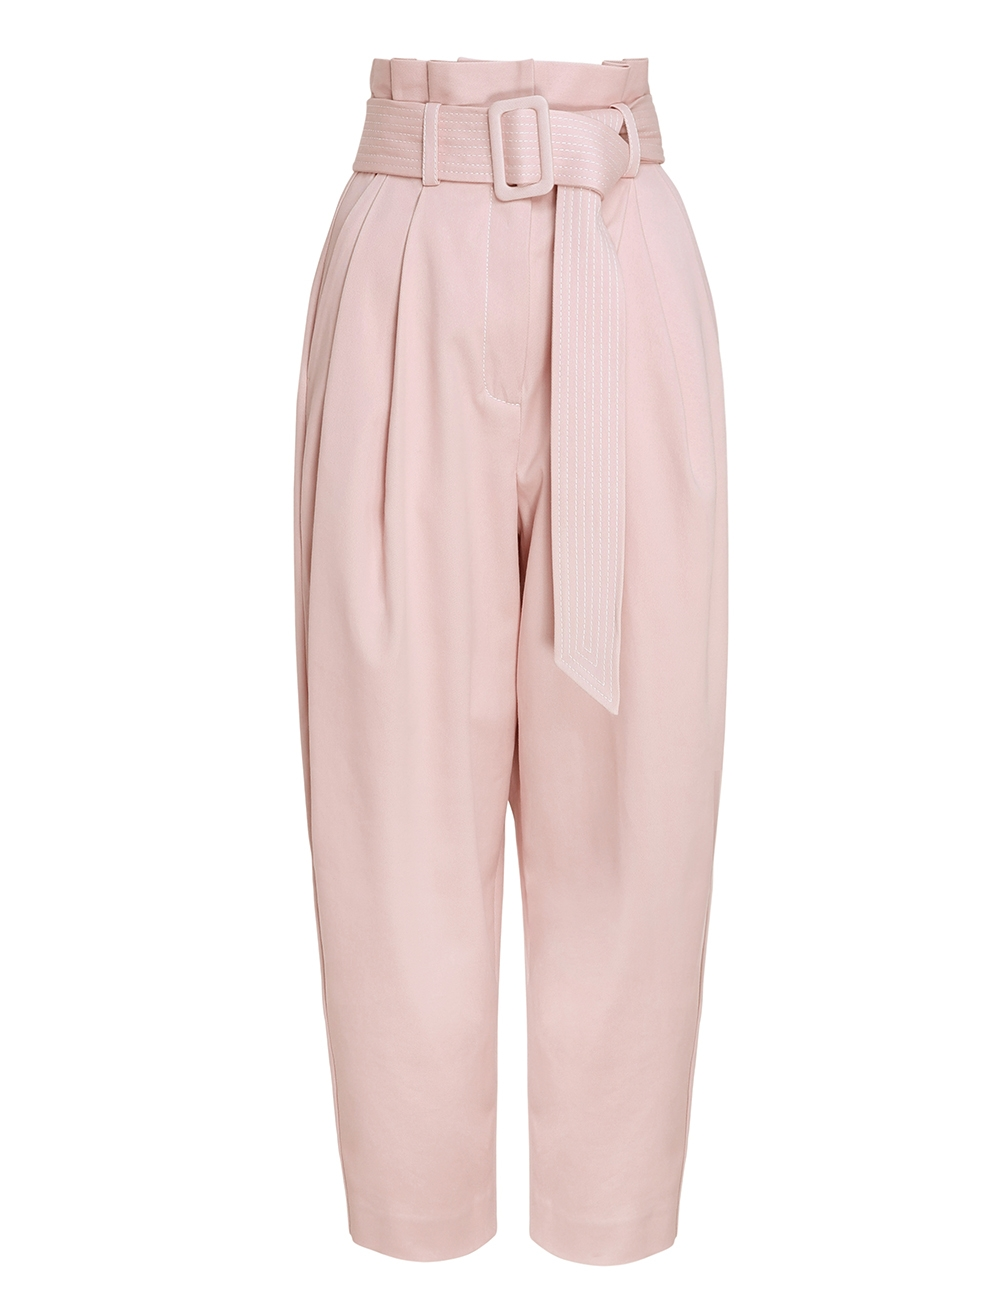 Wavelength Belted Pant